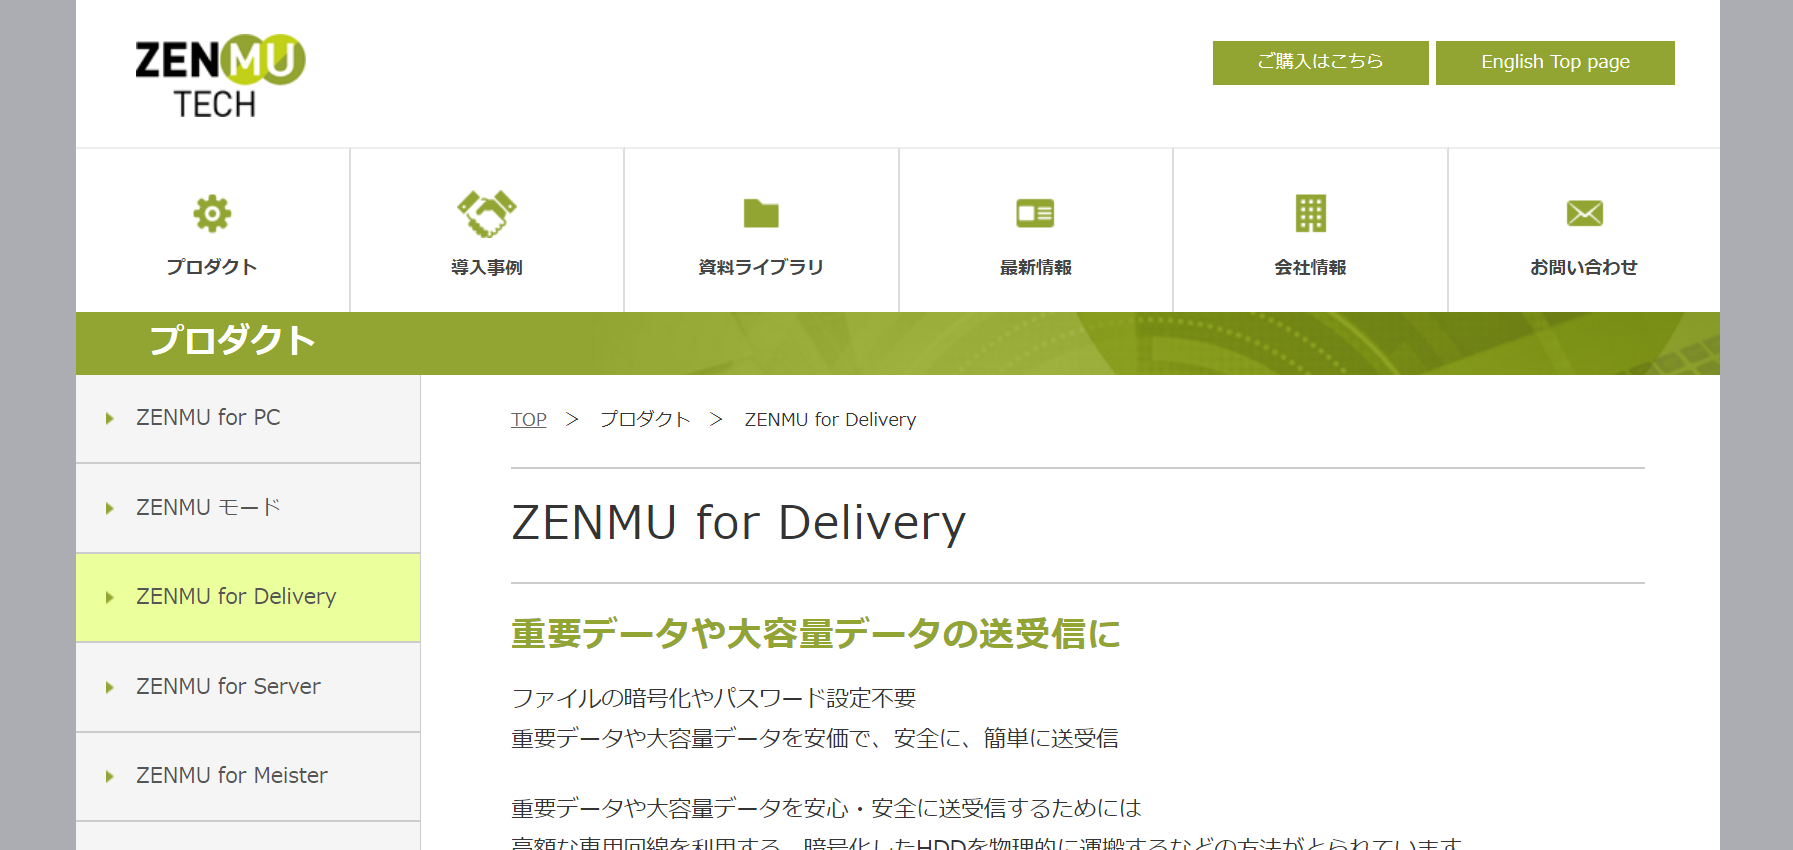 ZENMU for Delivery